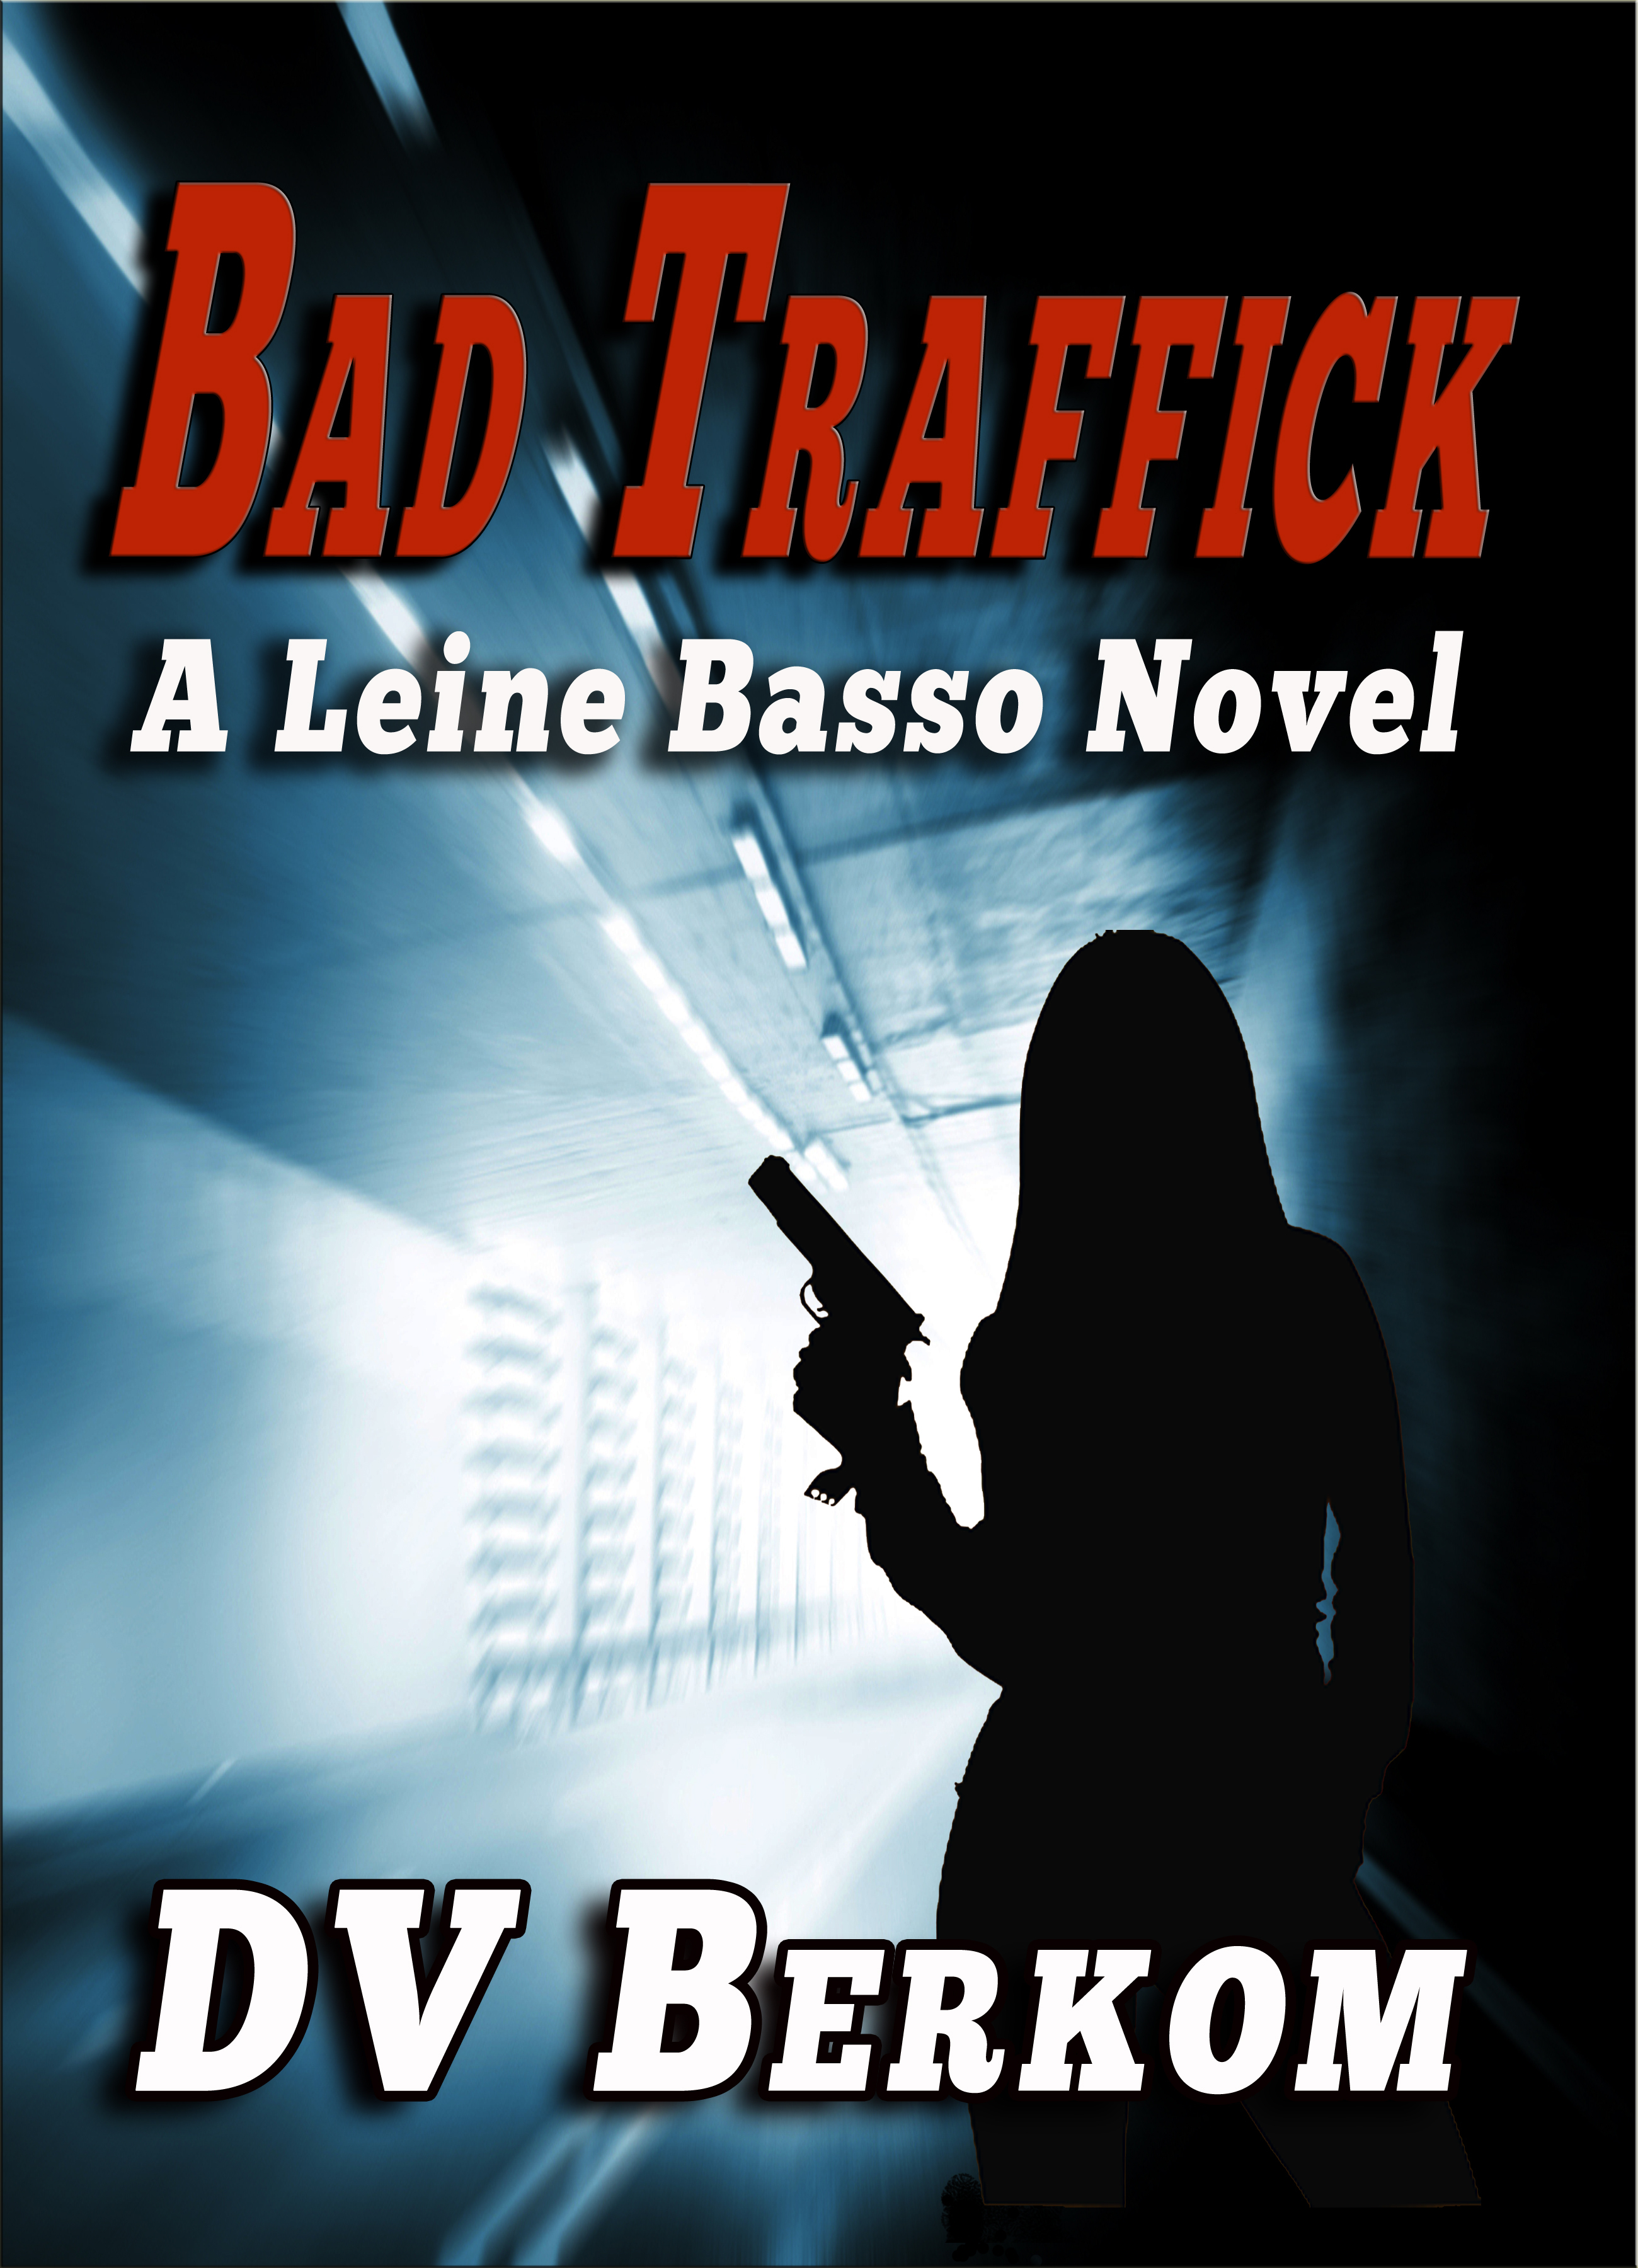 Bad Traffick, A Leine Basso Novel